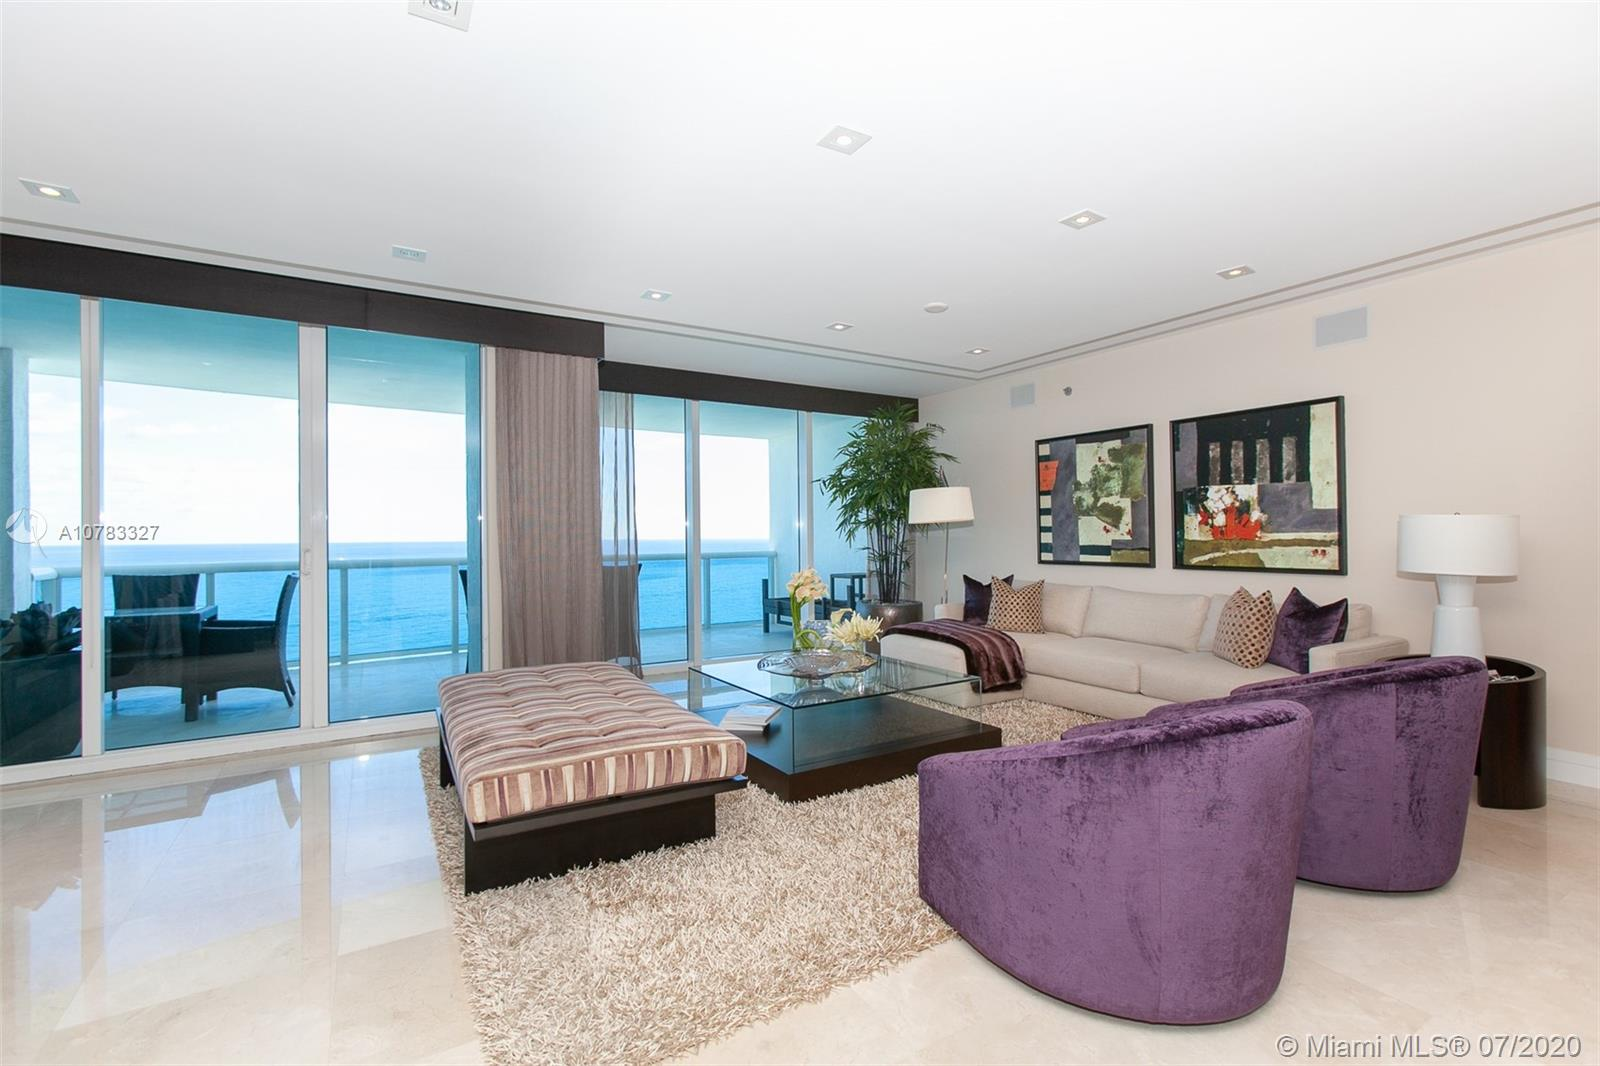 Super luxury Trump Hollywood. Panoramic direct Ocean views. 3 beds 3.5 baths, family room, Gourmet European kitchen w/ high quality Miele and Sub-Zero appliances. Private elevator entrance, 11ft ceilings, floor to ceiling glass windows & spacious terrace. Spectacular 3,395 SF residence, professionally designed and decorated by Steven G, Sold furnished! featuring most high-end finishes. No expense spared. Direct Oceanfront flow thru unit w/ due east & west terrace views. Breathtaking views in every direction. Comes with 1 storage unit. Shows like a model! Finest Finishes! Stunning! Exquisite Lobby, Unsurpassed Amenities incl. Breakfast Room, Wine + Cigar Lounges, Fitness Center,Spa,Massage Rooms,Theater,Party Room,Caterer's Kitchen,Pool + Beach Service,24 hr Security,Valet,Concierge.